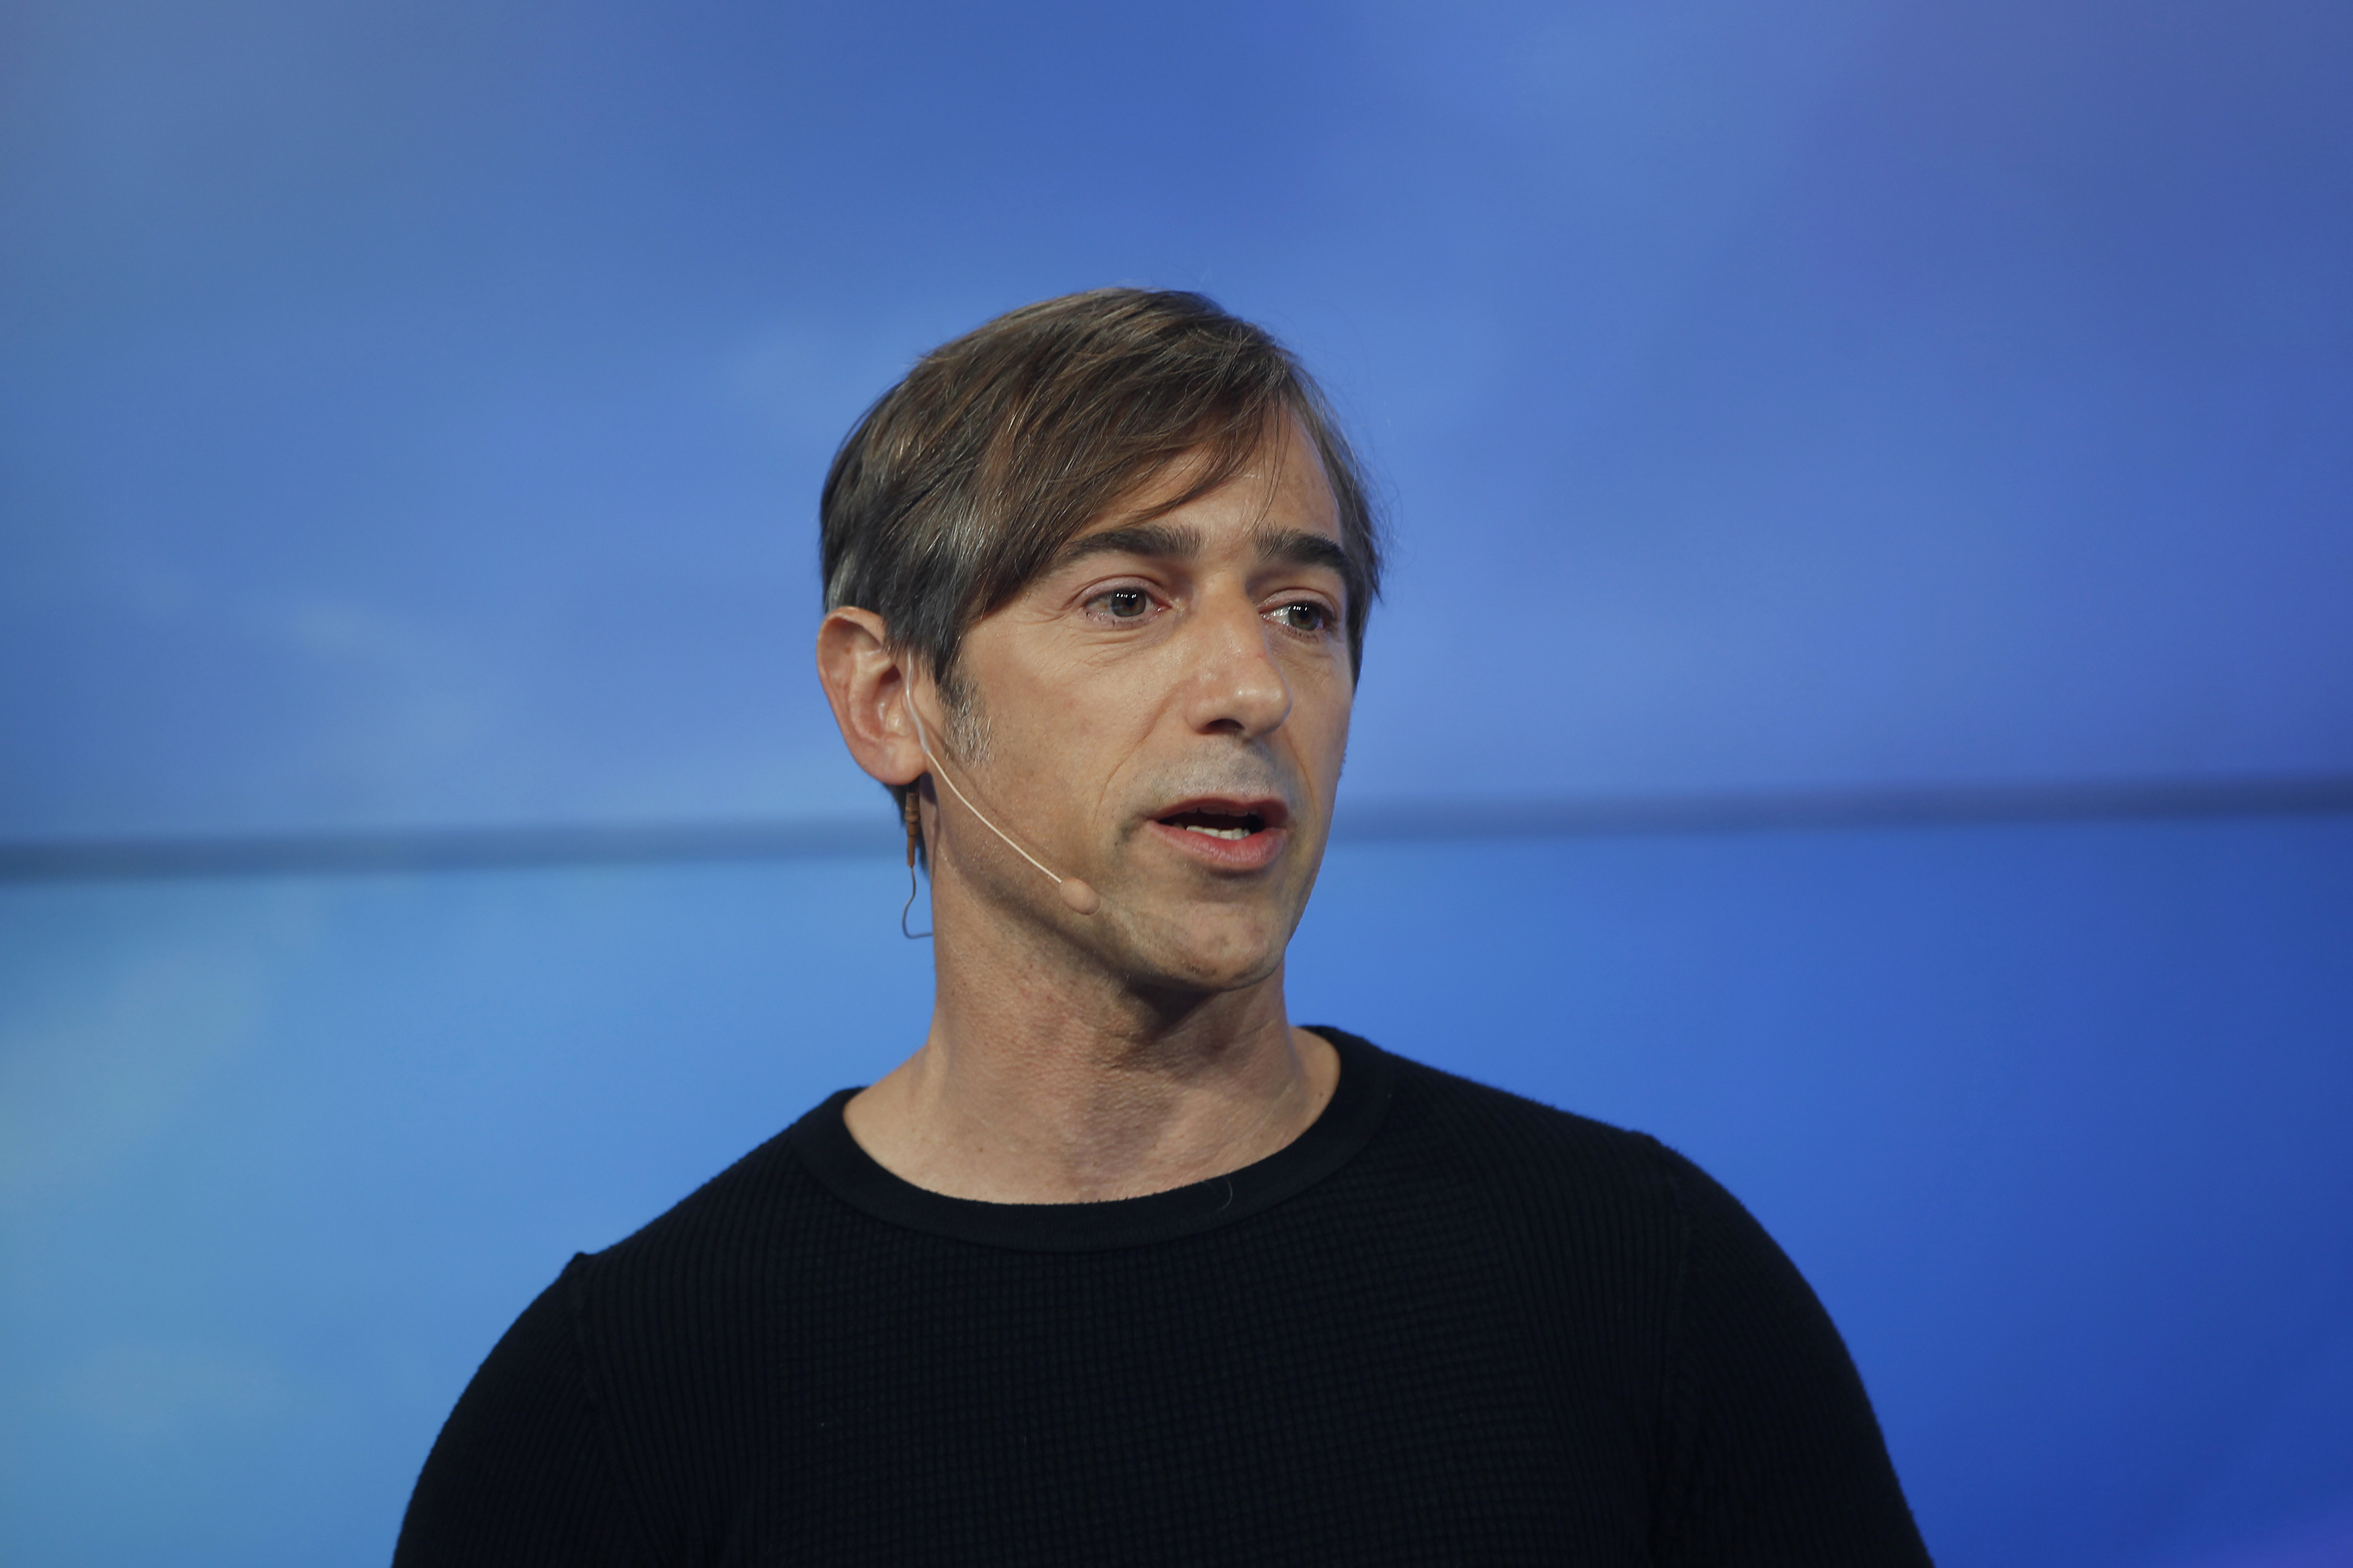 Zynga CEO Mark Pincus in 2012.